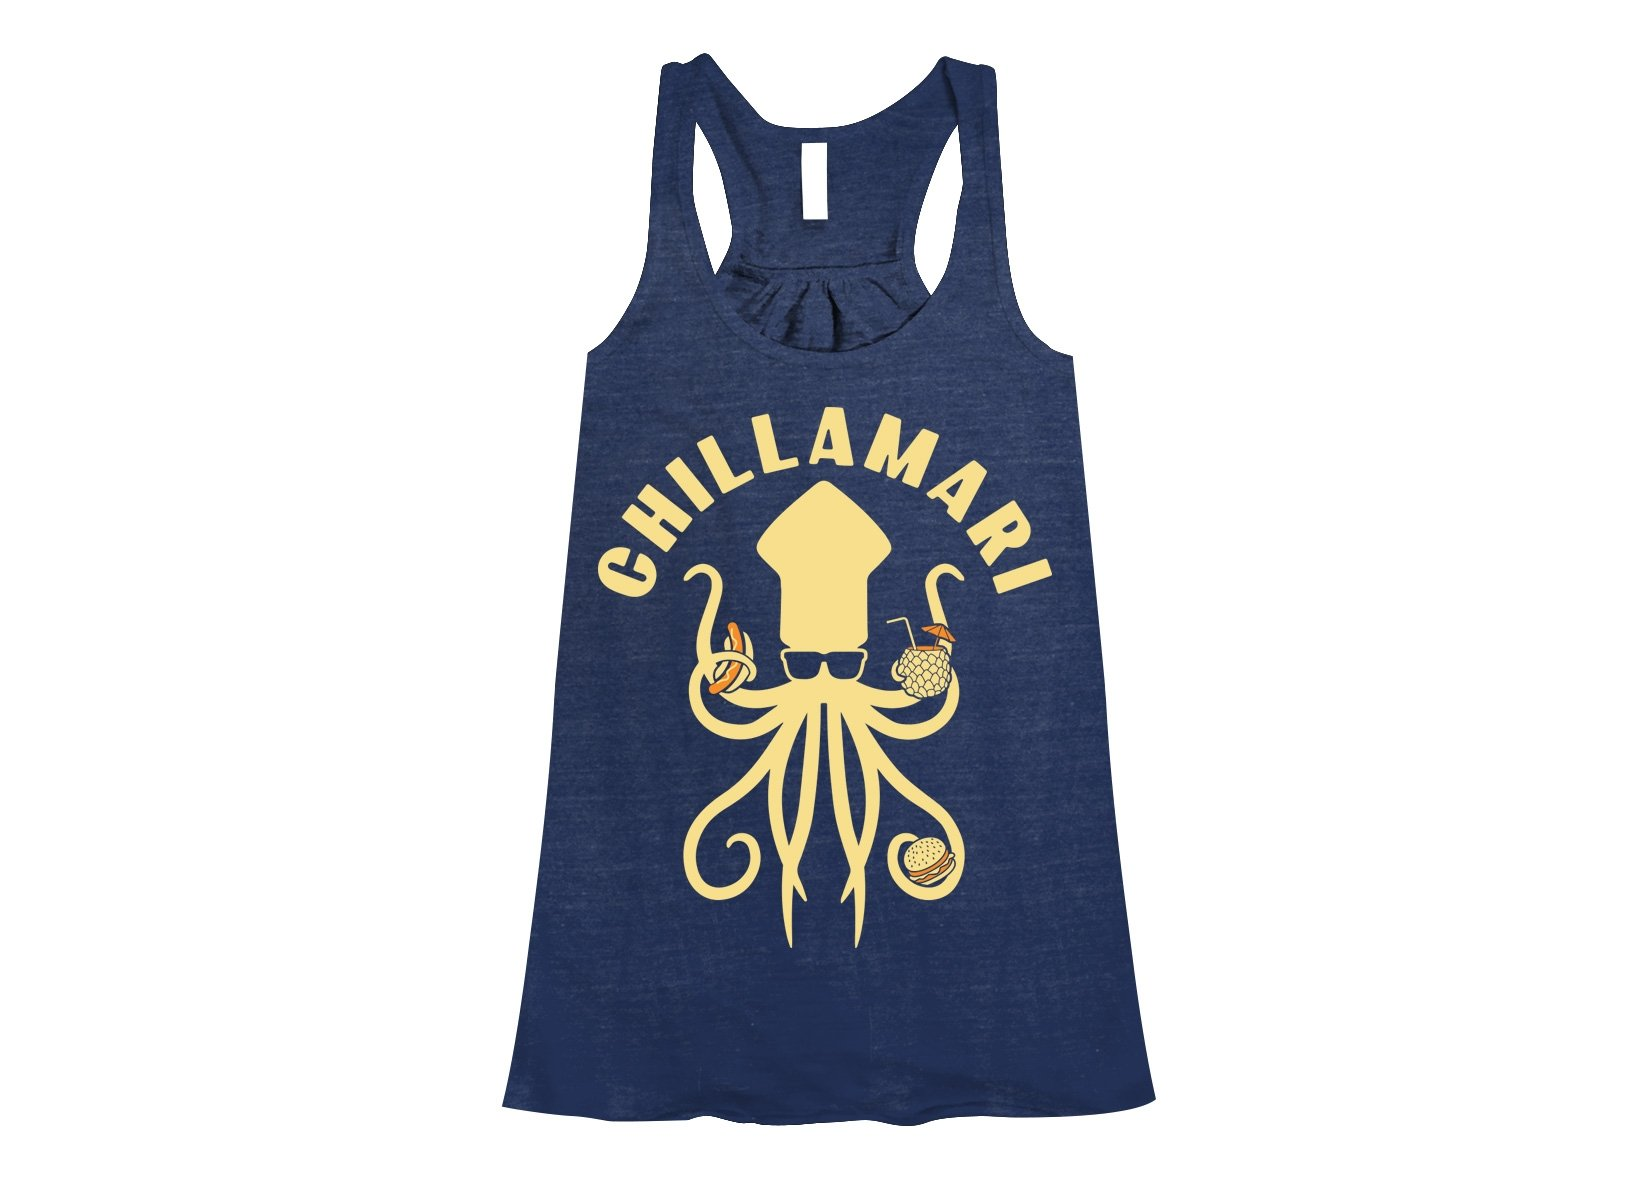 Chillamari on Womens Tanks T-Shirt